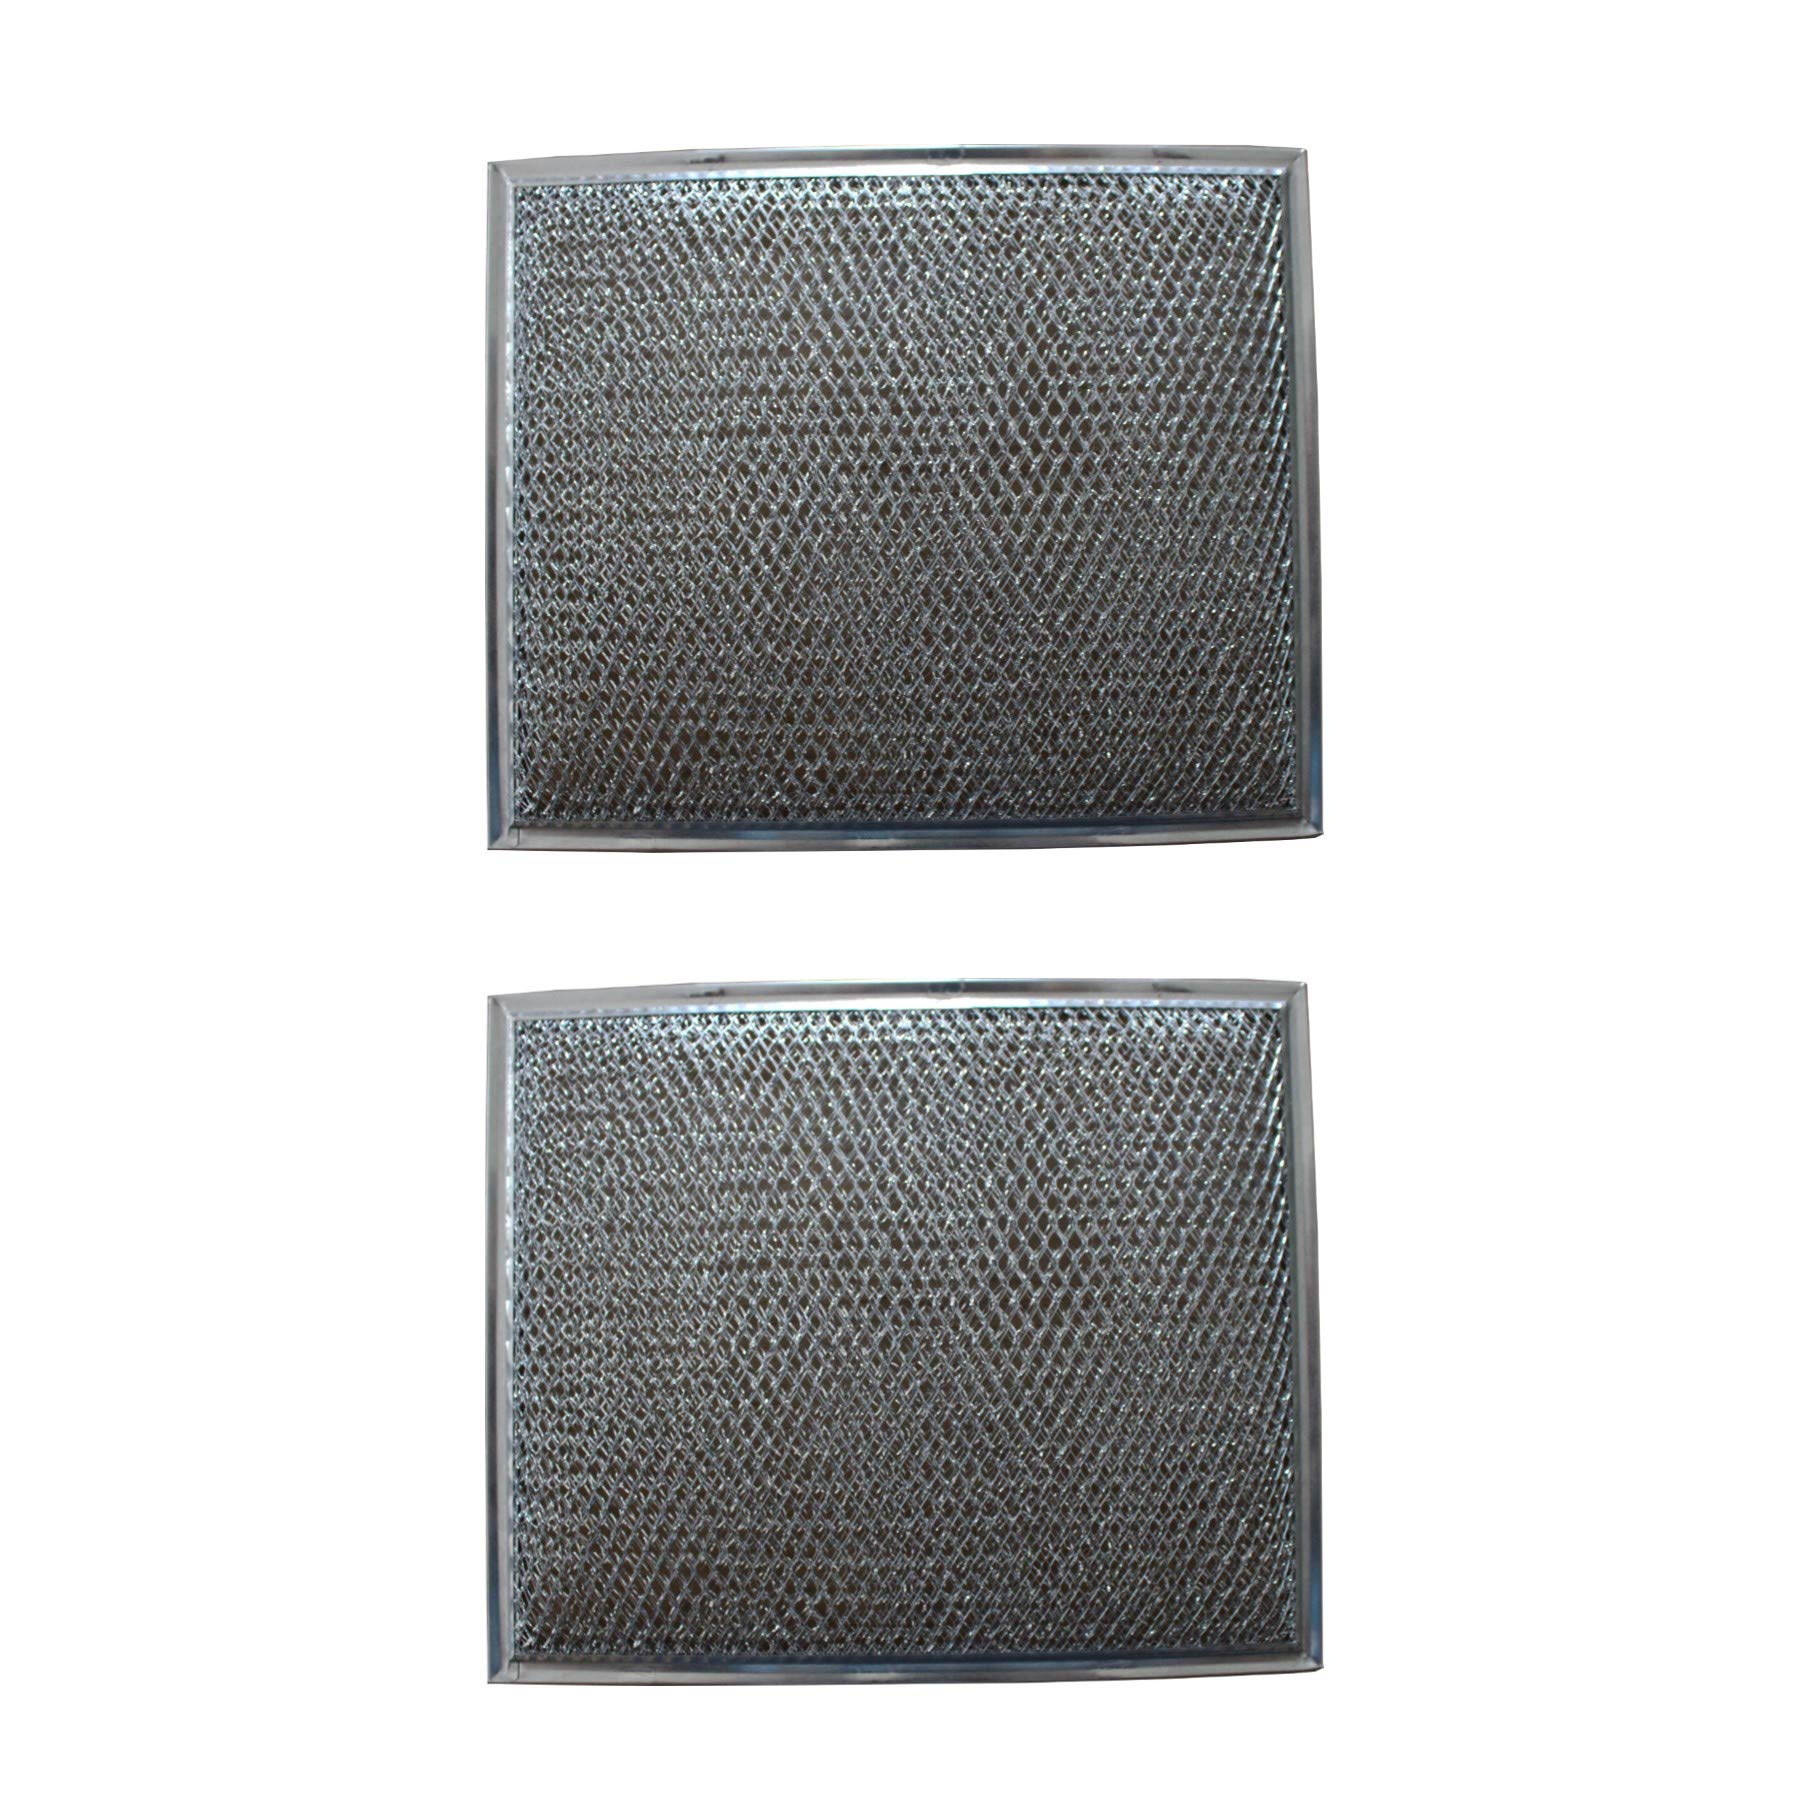 Replacement Aluminum Filter Compatible With Many Broan / Nutone Models   8 3/4 x 10 1/2 x 1/8 inches